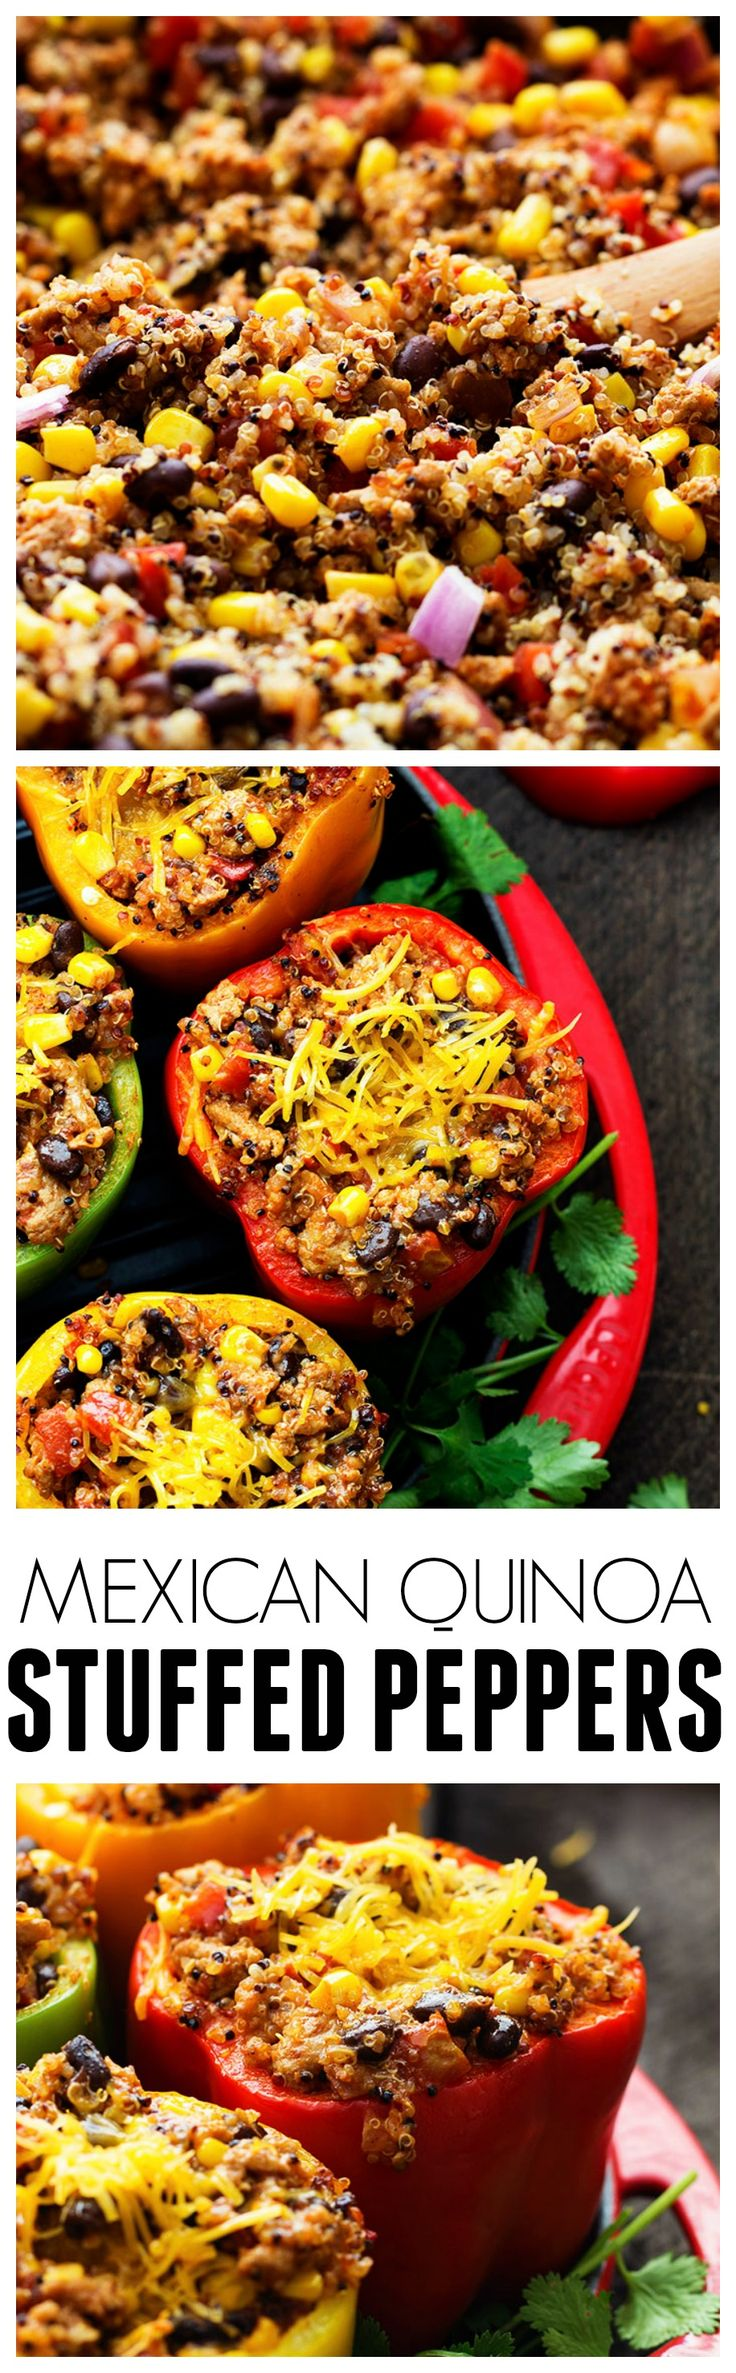 Mexican Quinoa Stuffed Peppers - Full of flavor and so healthy for you! The added quinoa is amazing!